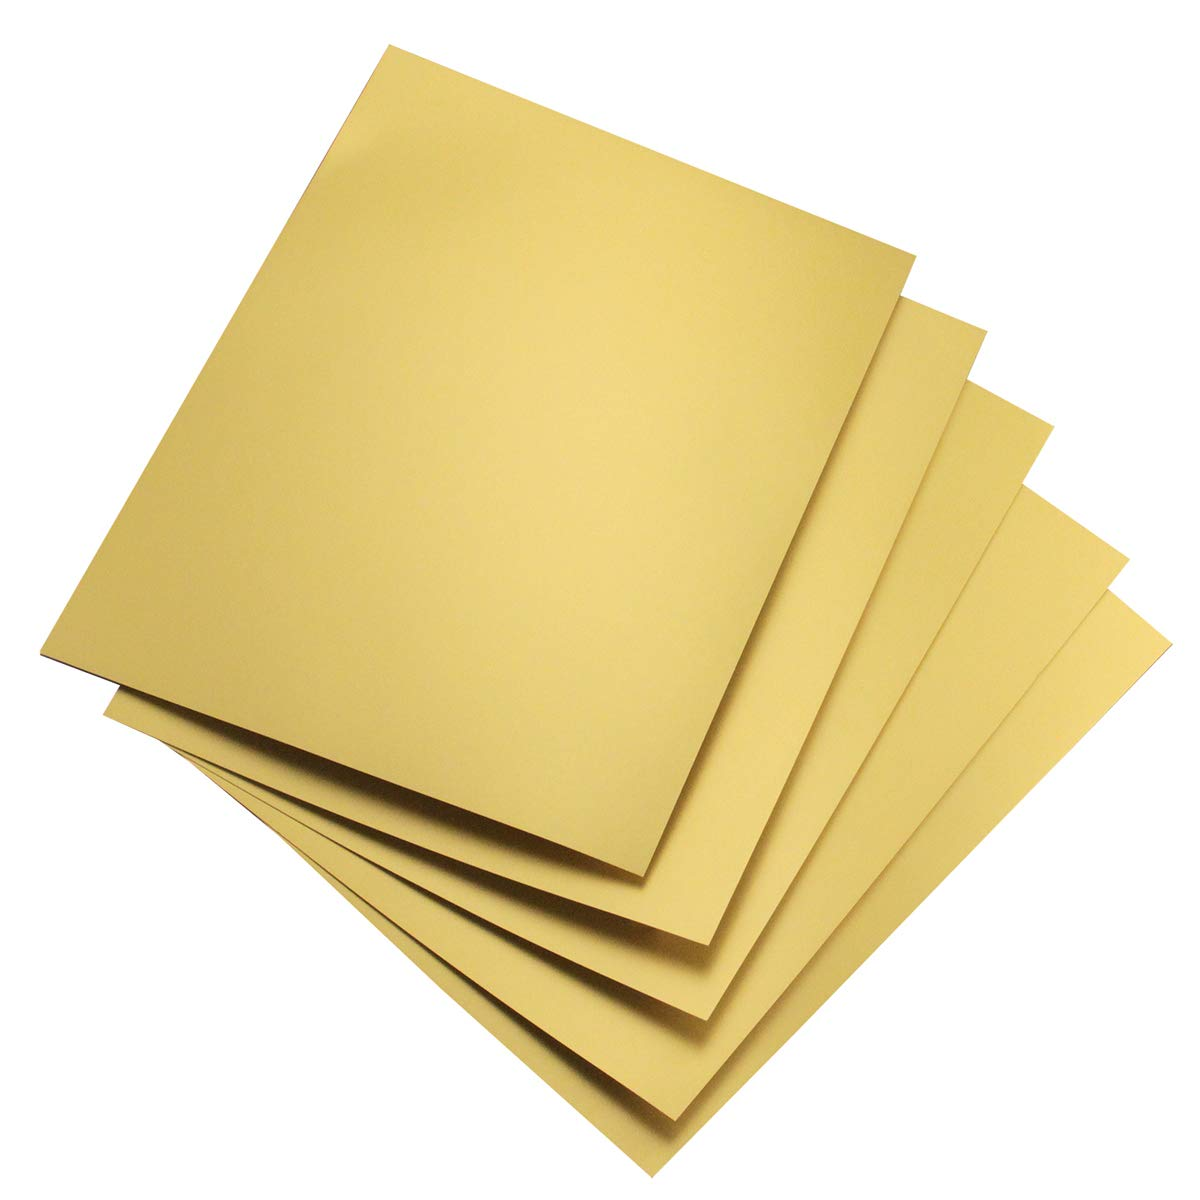 Hygloss Products Metallic Foil Board Sheets-8.5 x 11 Inches - Matte Gold, 100 Pack by Hygloss